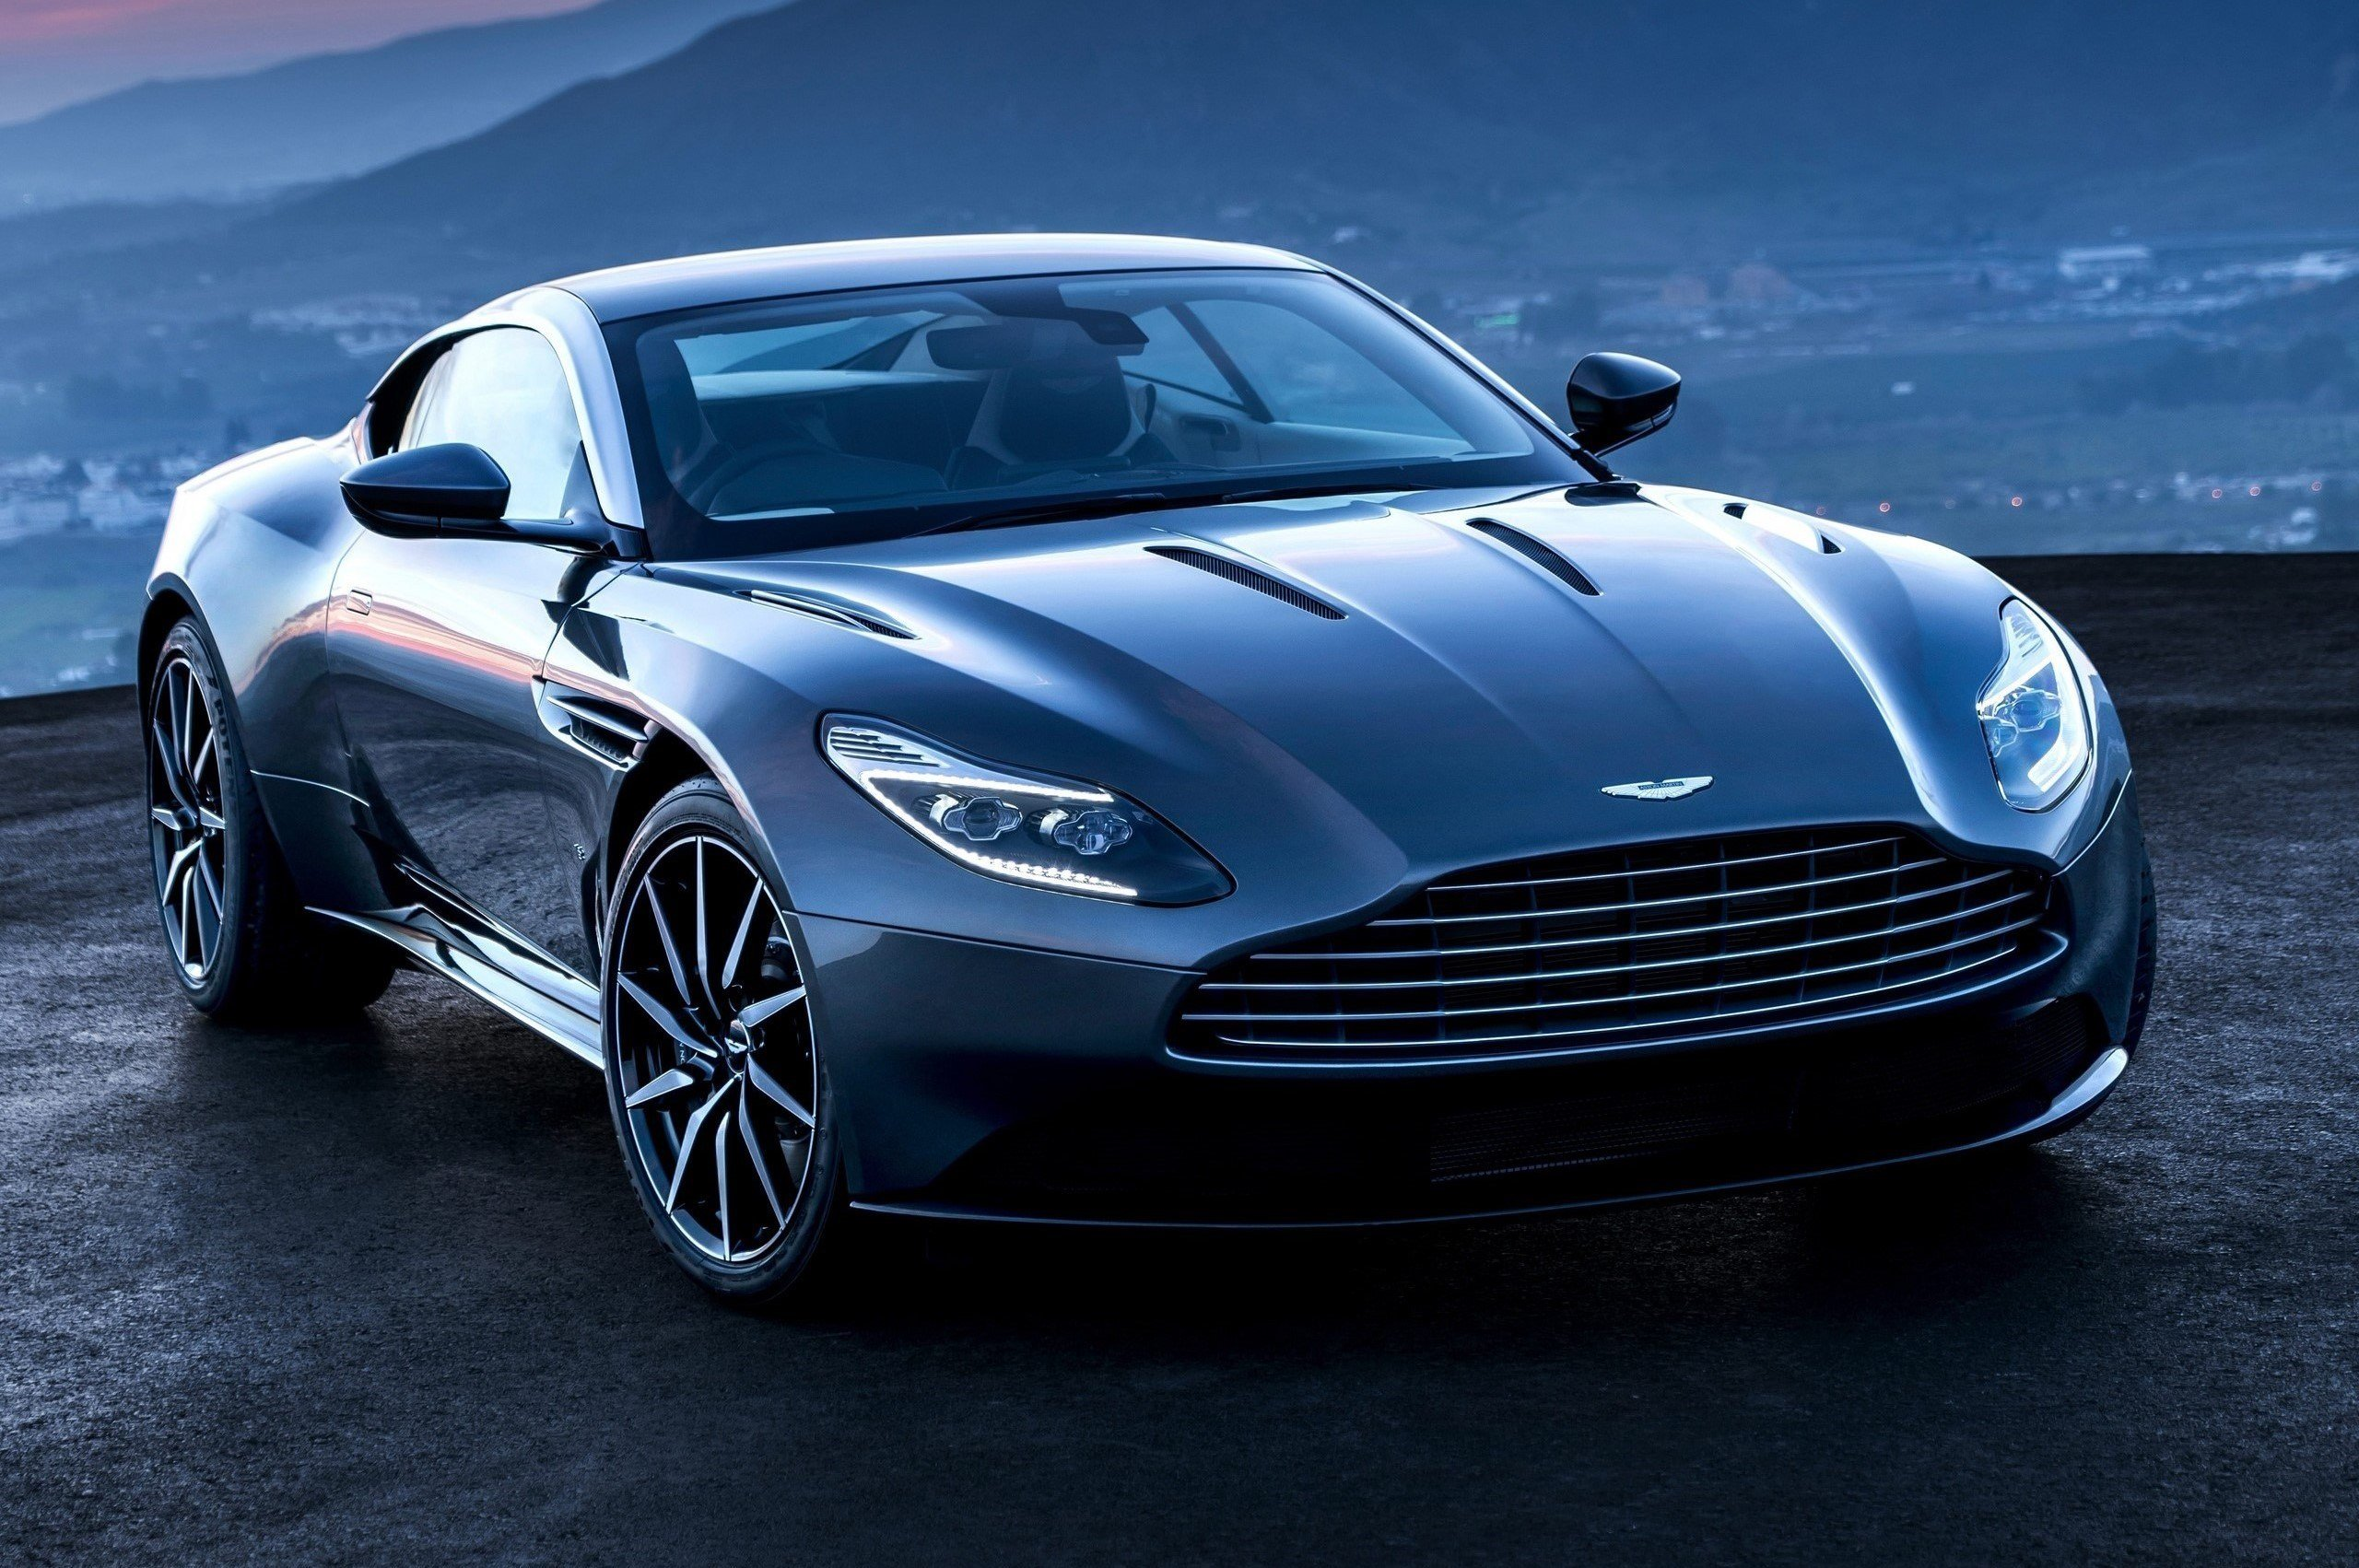 Latest Aston Martin Db11 Sports Car Is Gorgeous Powerful And Free Download